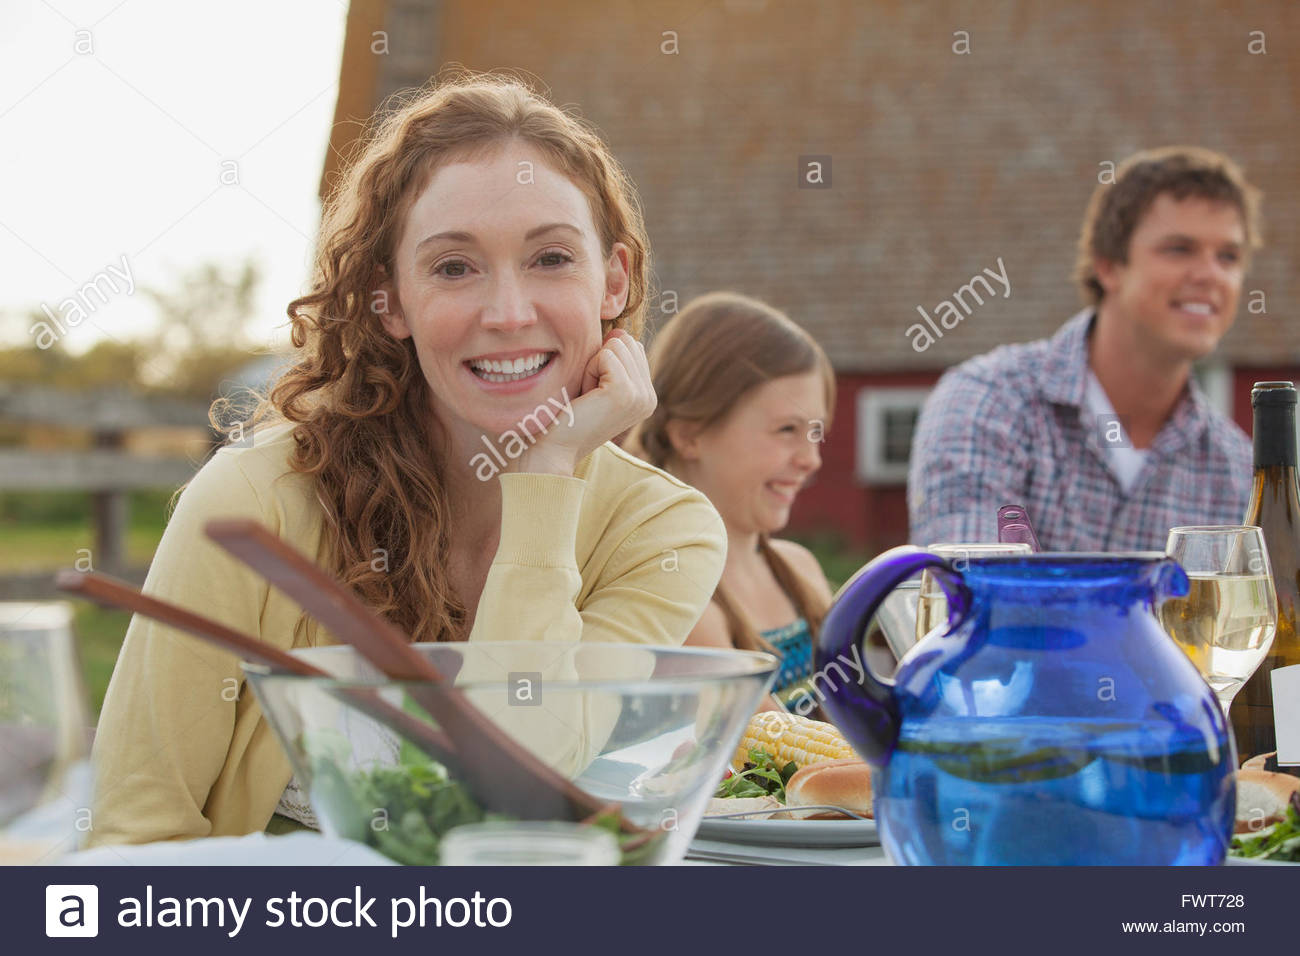 Portrait of pretty woman at outdoor family dinner. - Stock Image